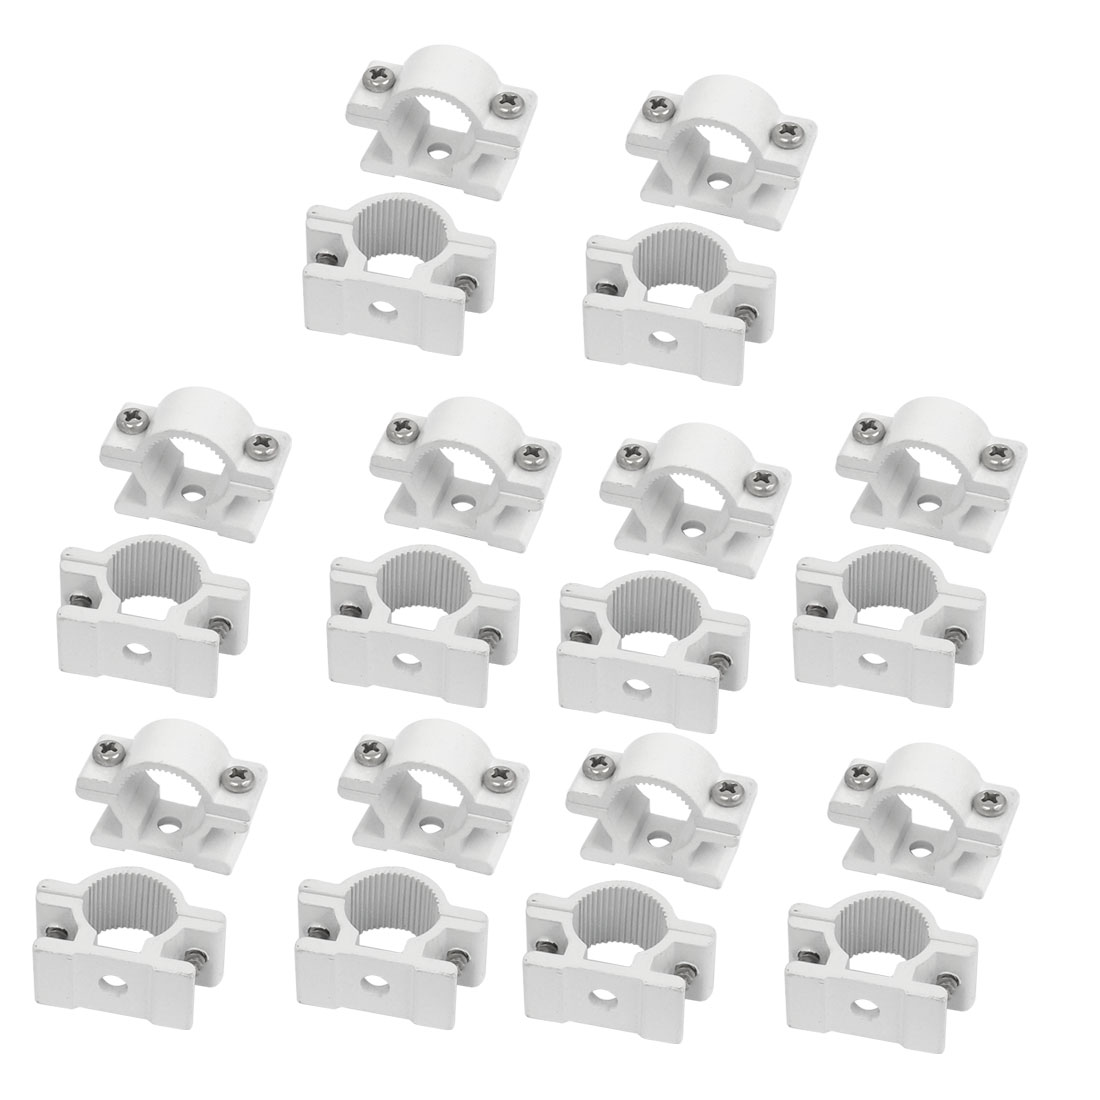 25mm Dia Plastic Tube Water Supply Pipe Clamps Clips Connectors White 20Pcs